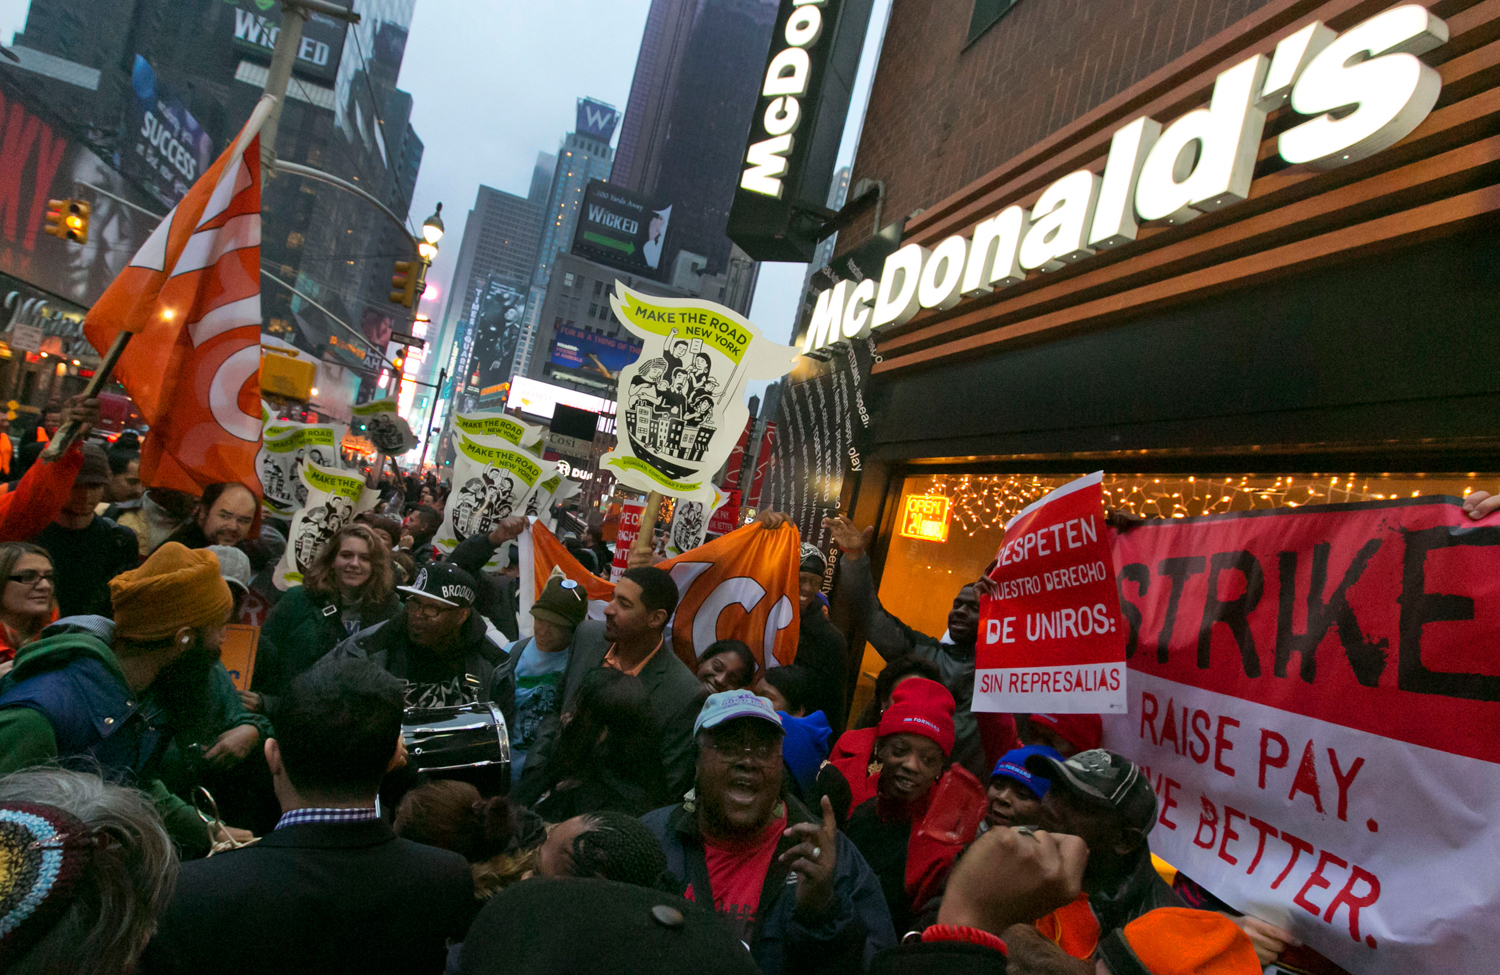 Demonstrators-rally-for-better-wages-outside-a-McDonalds-restaurant-in-New-York-as-part-of-a-national-protest